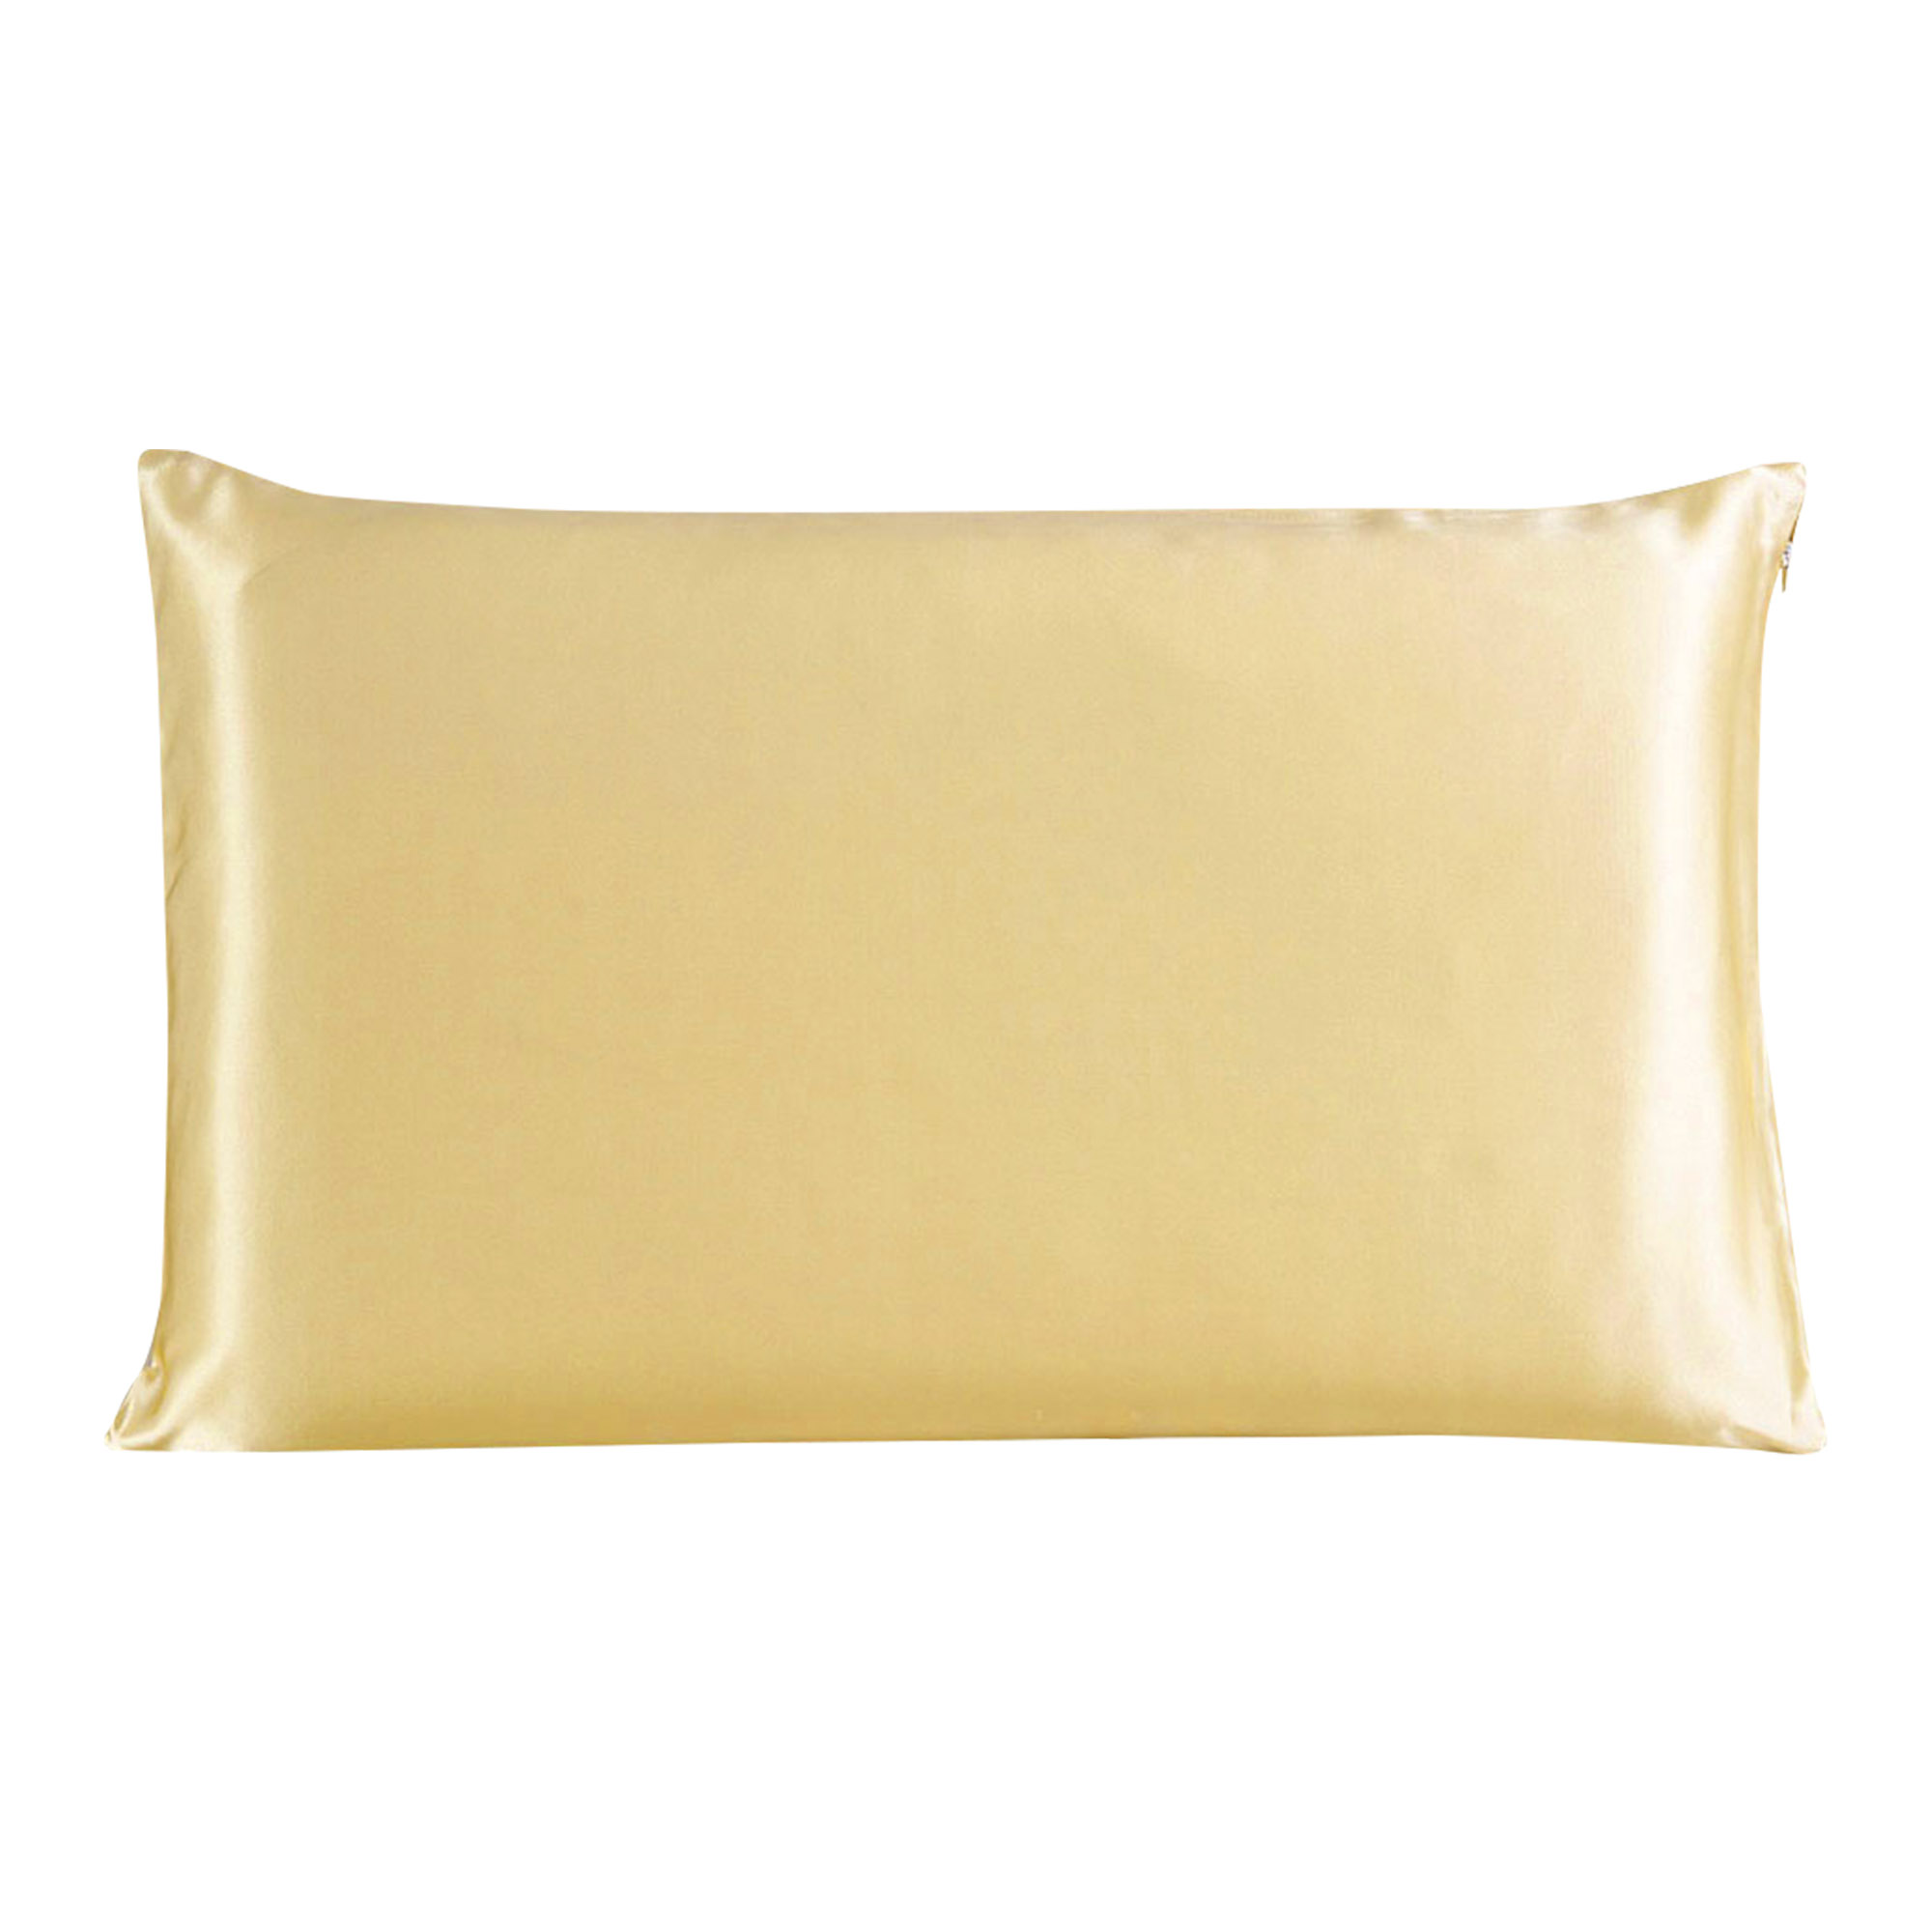 100% Mulberry Silk Fabric Pillow Case Cover Pillowcase Champagne King Size